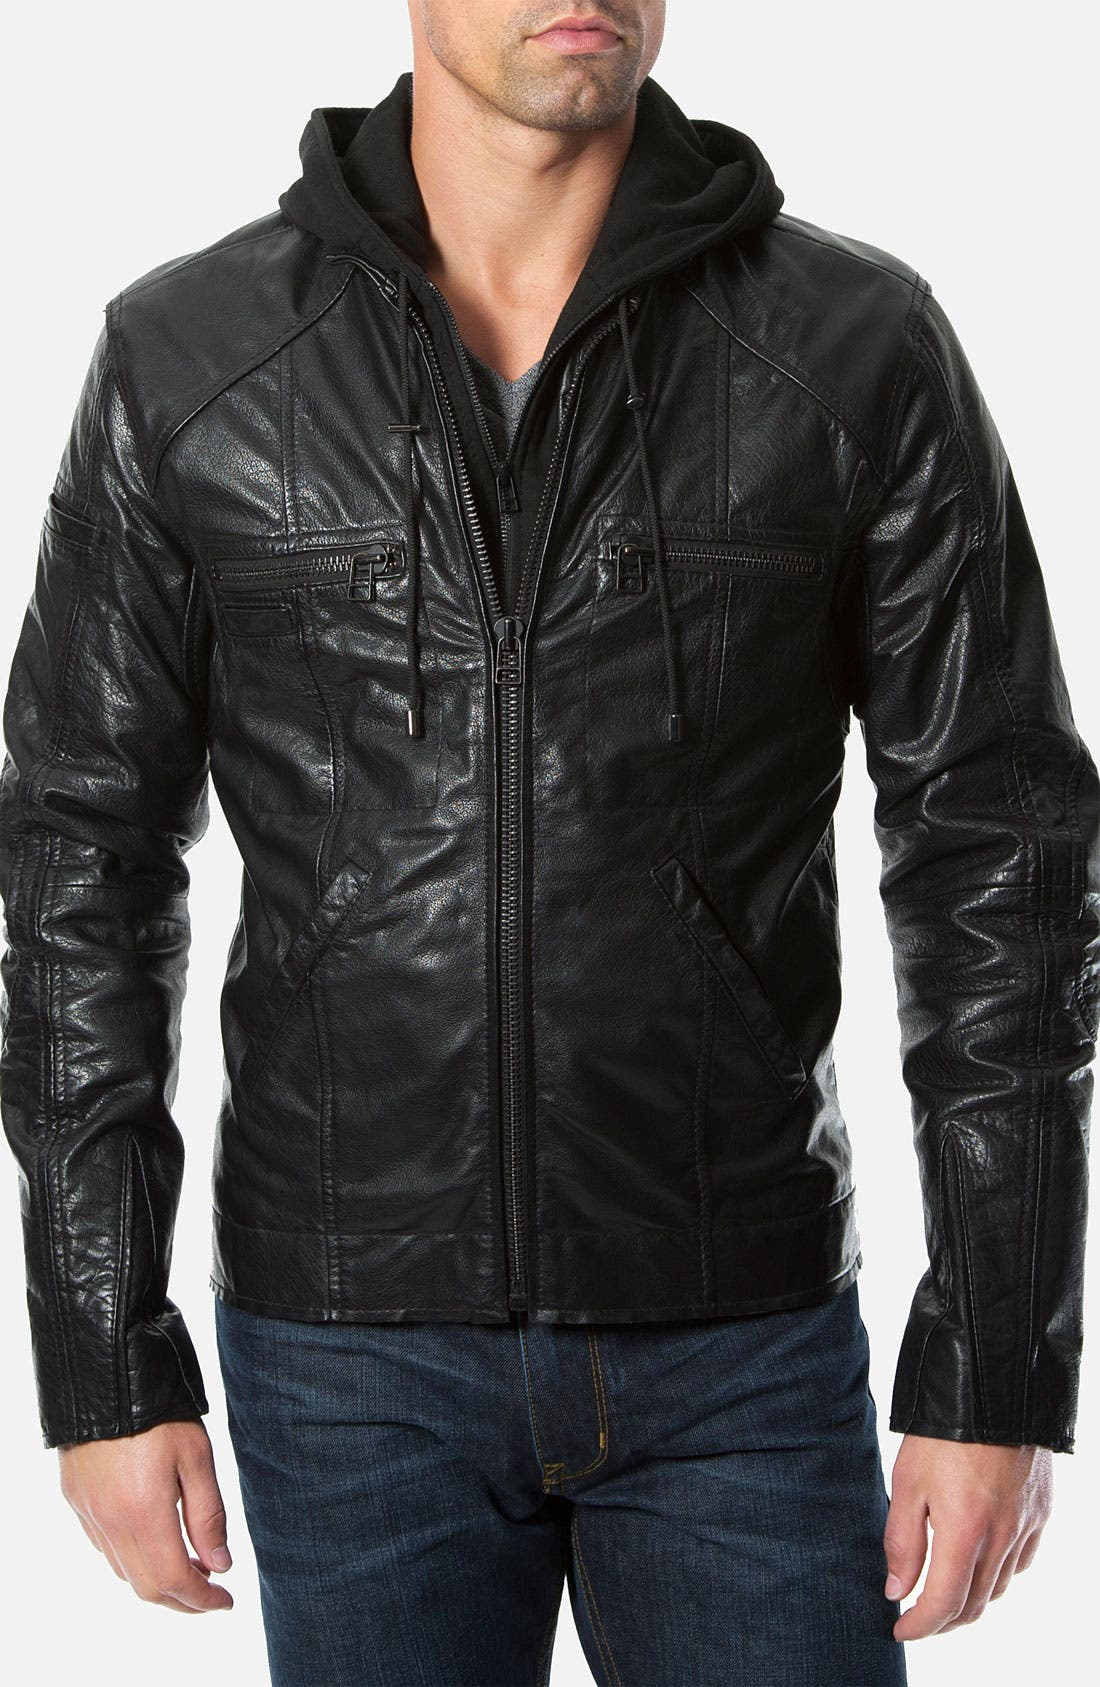 Main Image - 7 Diamonds 'Tokyo' Leather Jacket